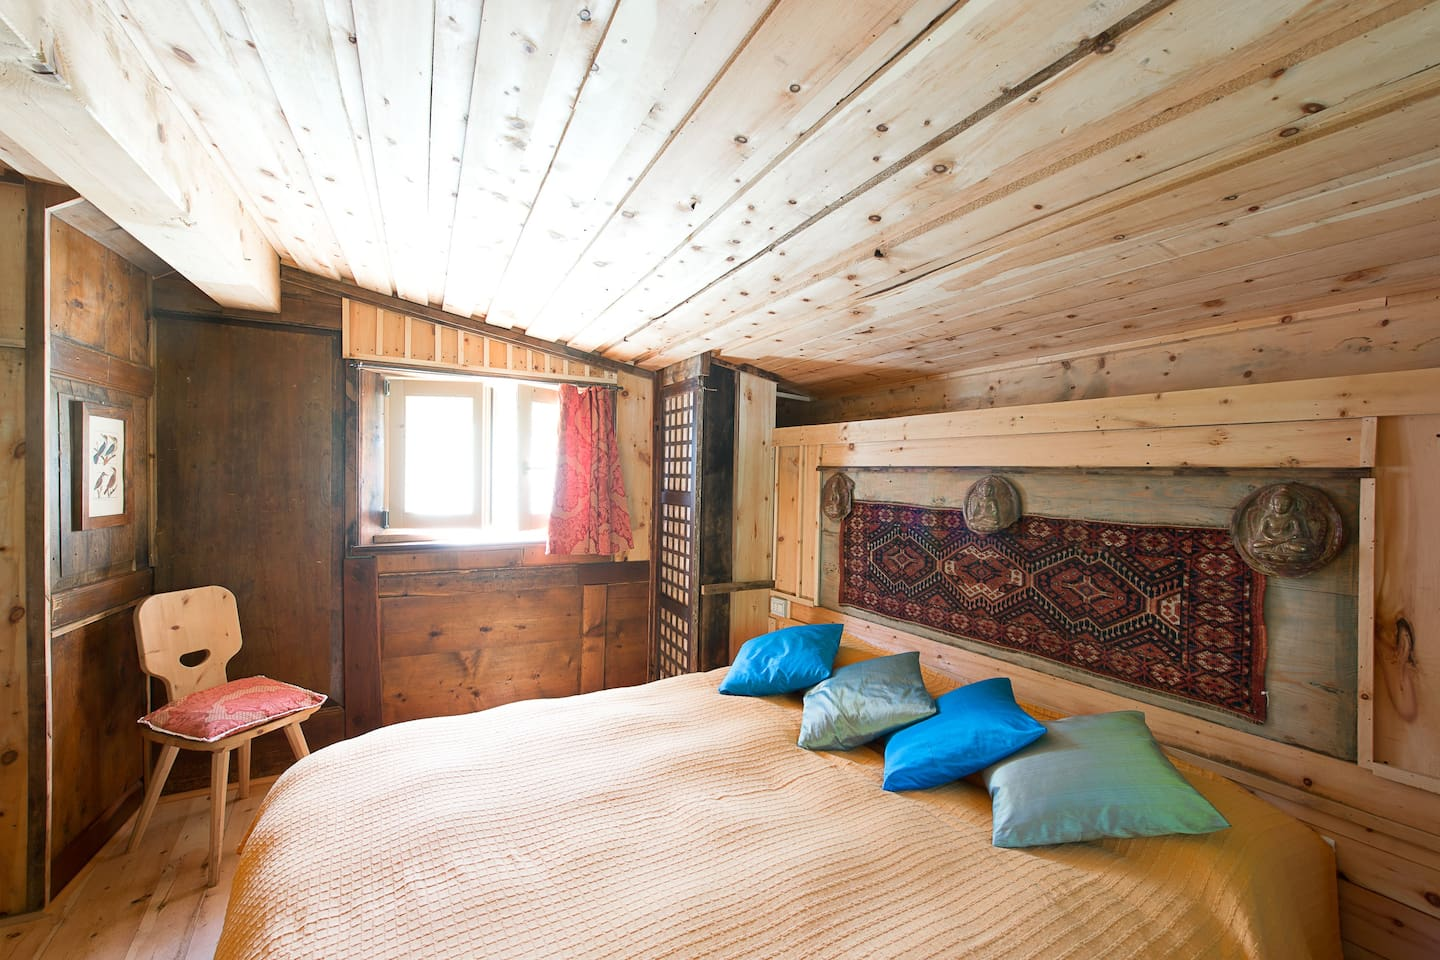 antique wood and ethnic objects have been used to furnish the guests room